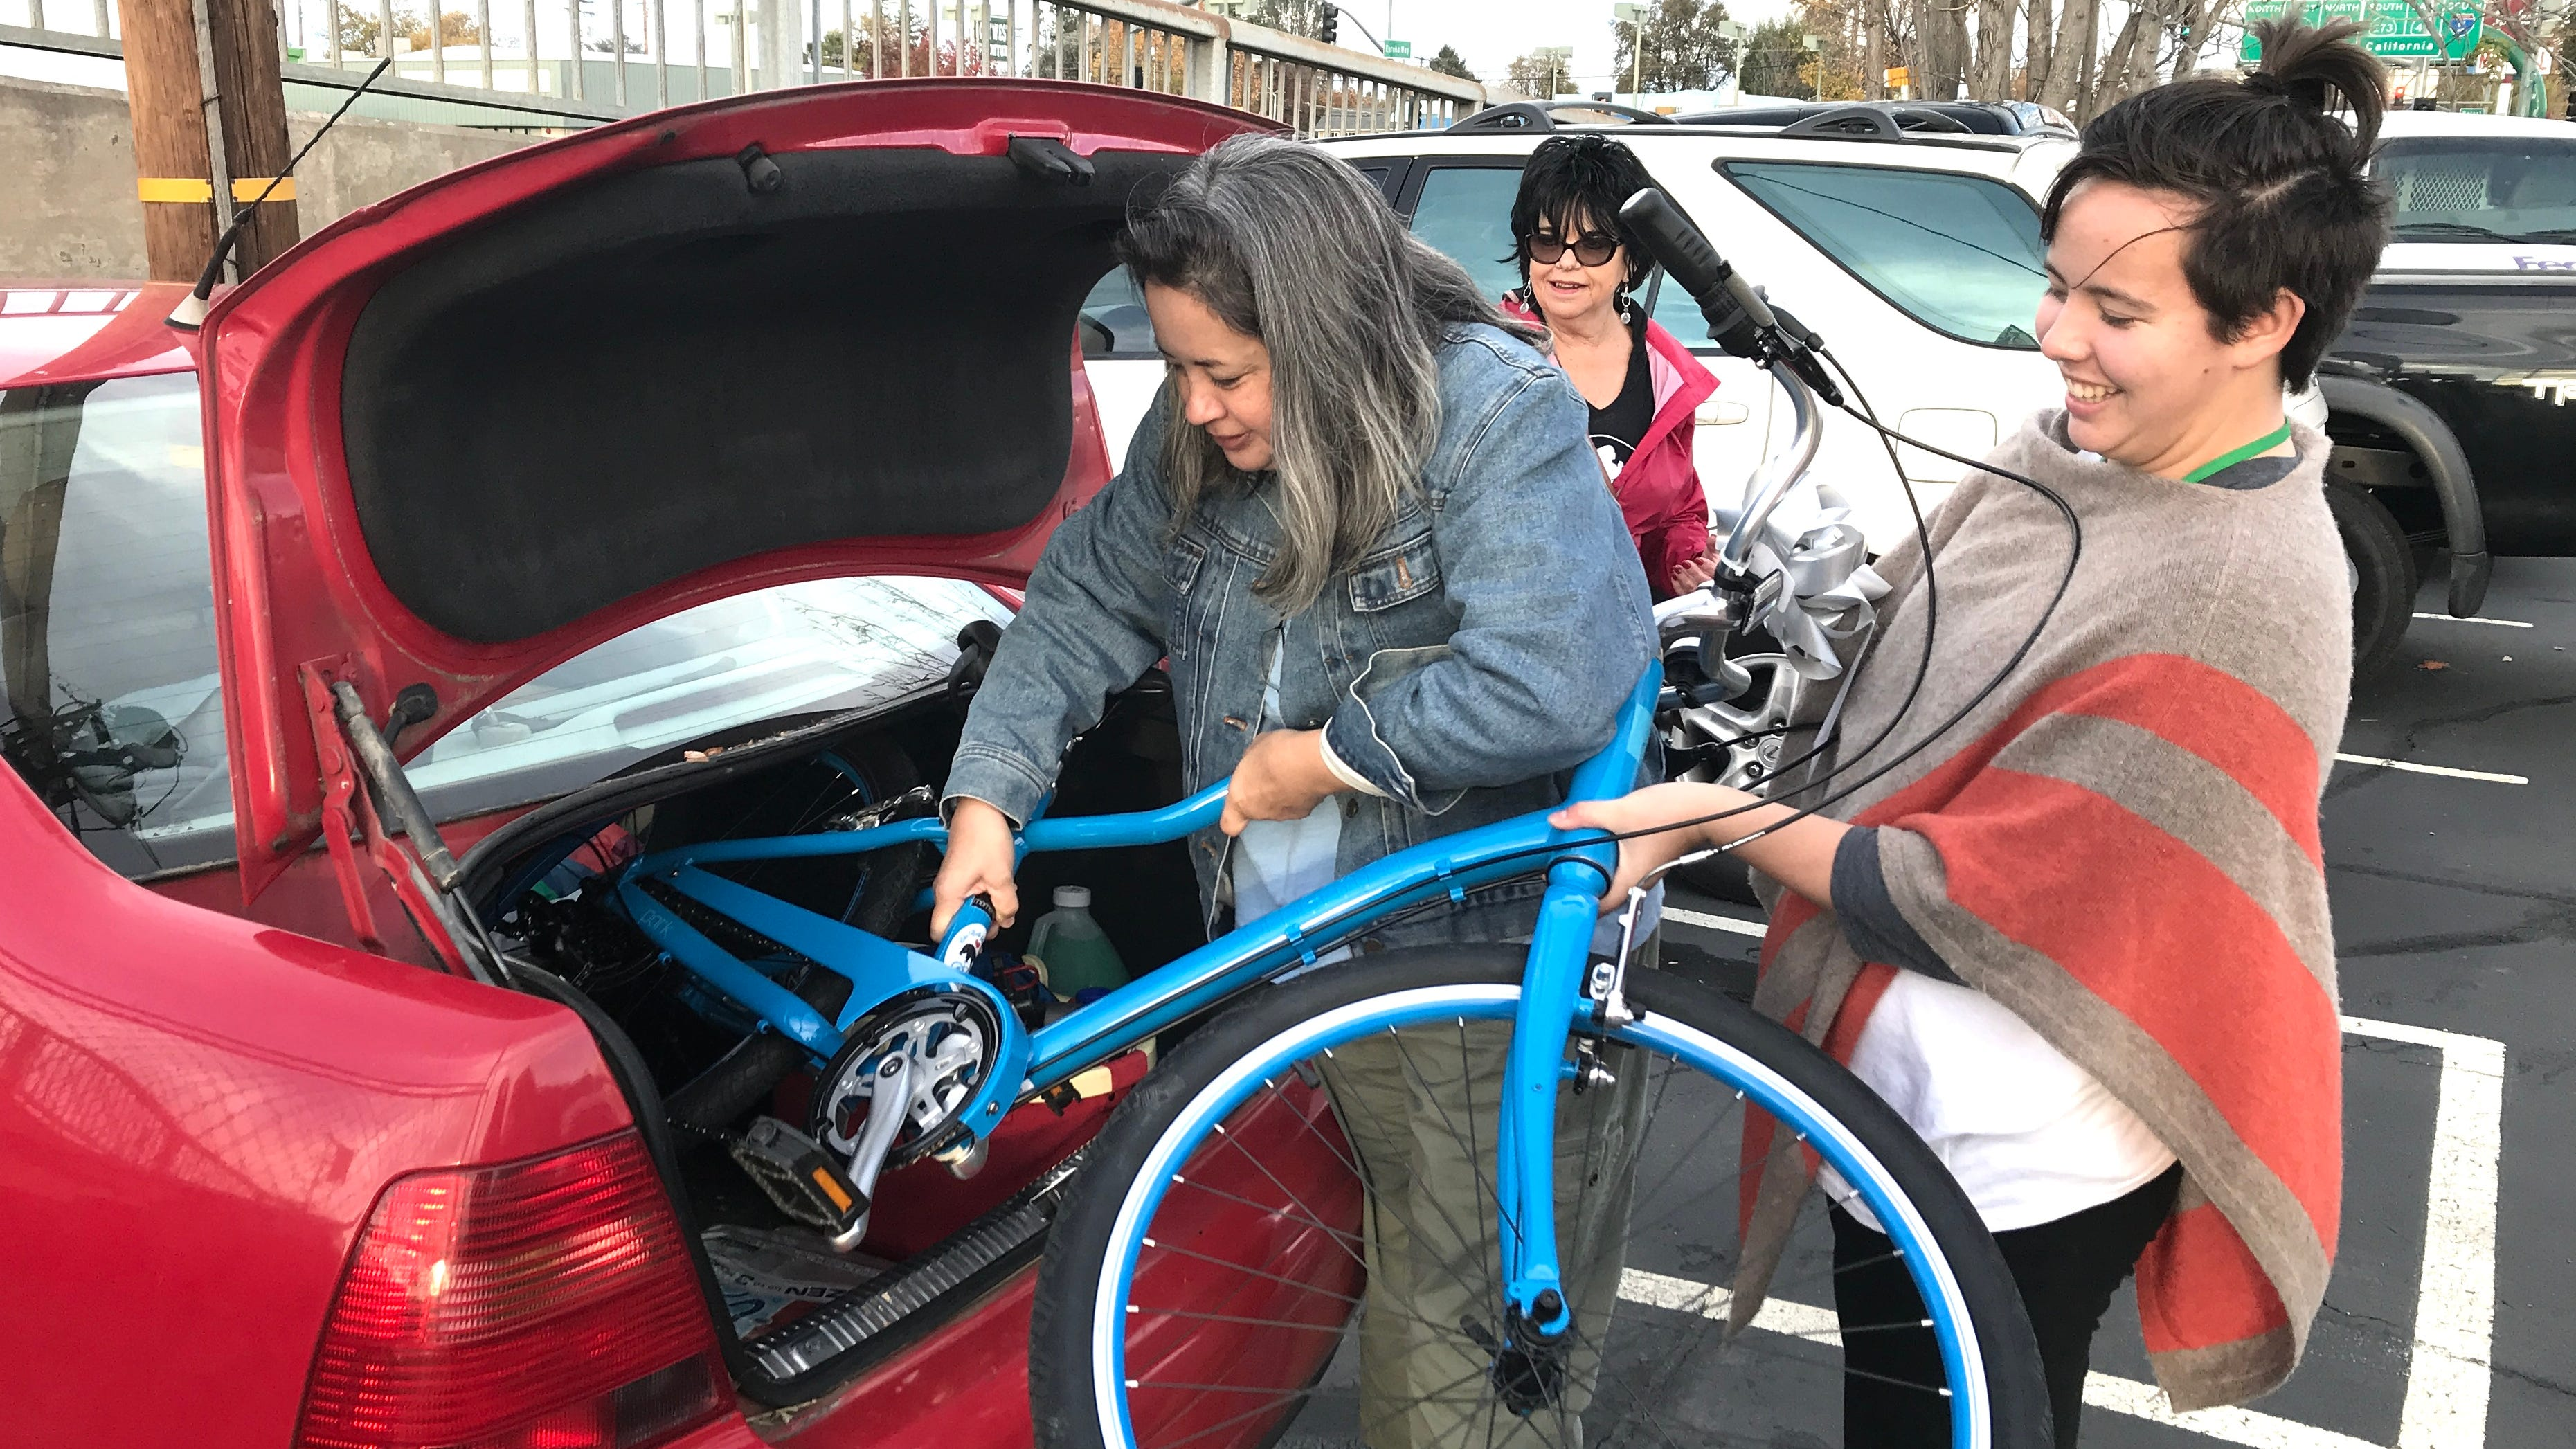 Hilly Wallis, left, gets help from her daughter, Ella Wallis, right, in loading her new bicycle Saturday courtesy of Giant Bicycles. The Chain Gang Bike Shop hosted a gifting party where 50 adult survivors of the Carr Fire received the free bikes, valued at $500.